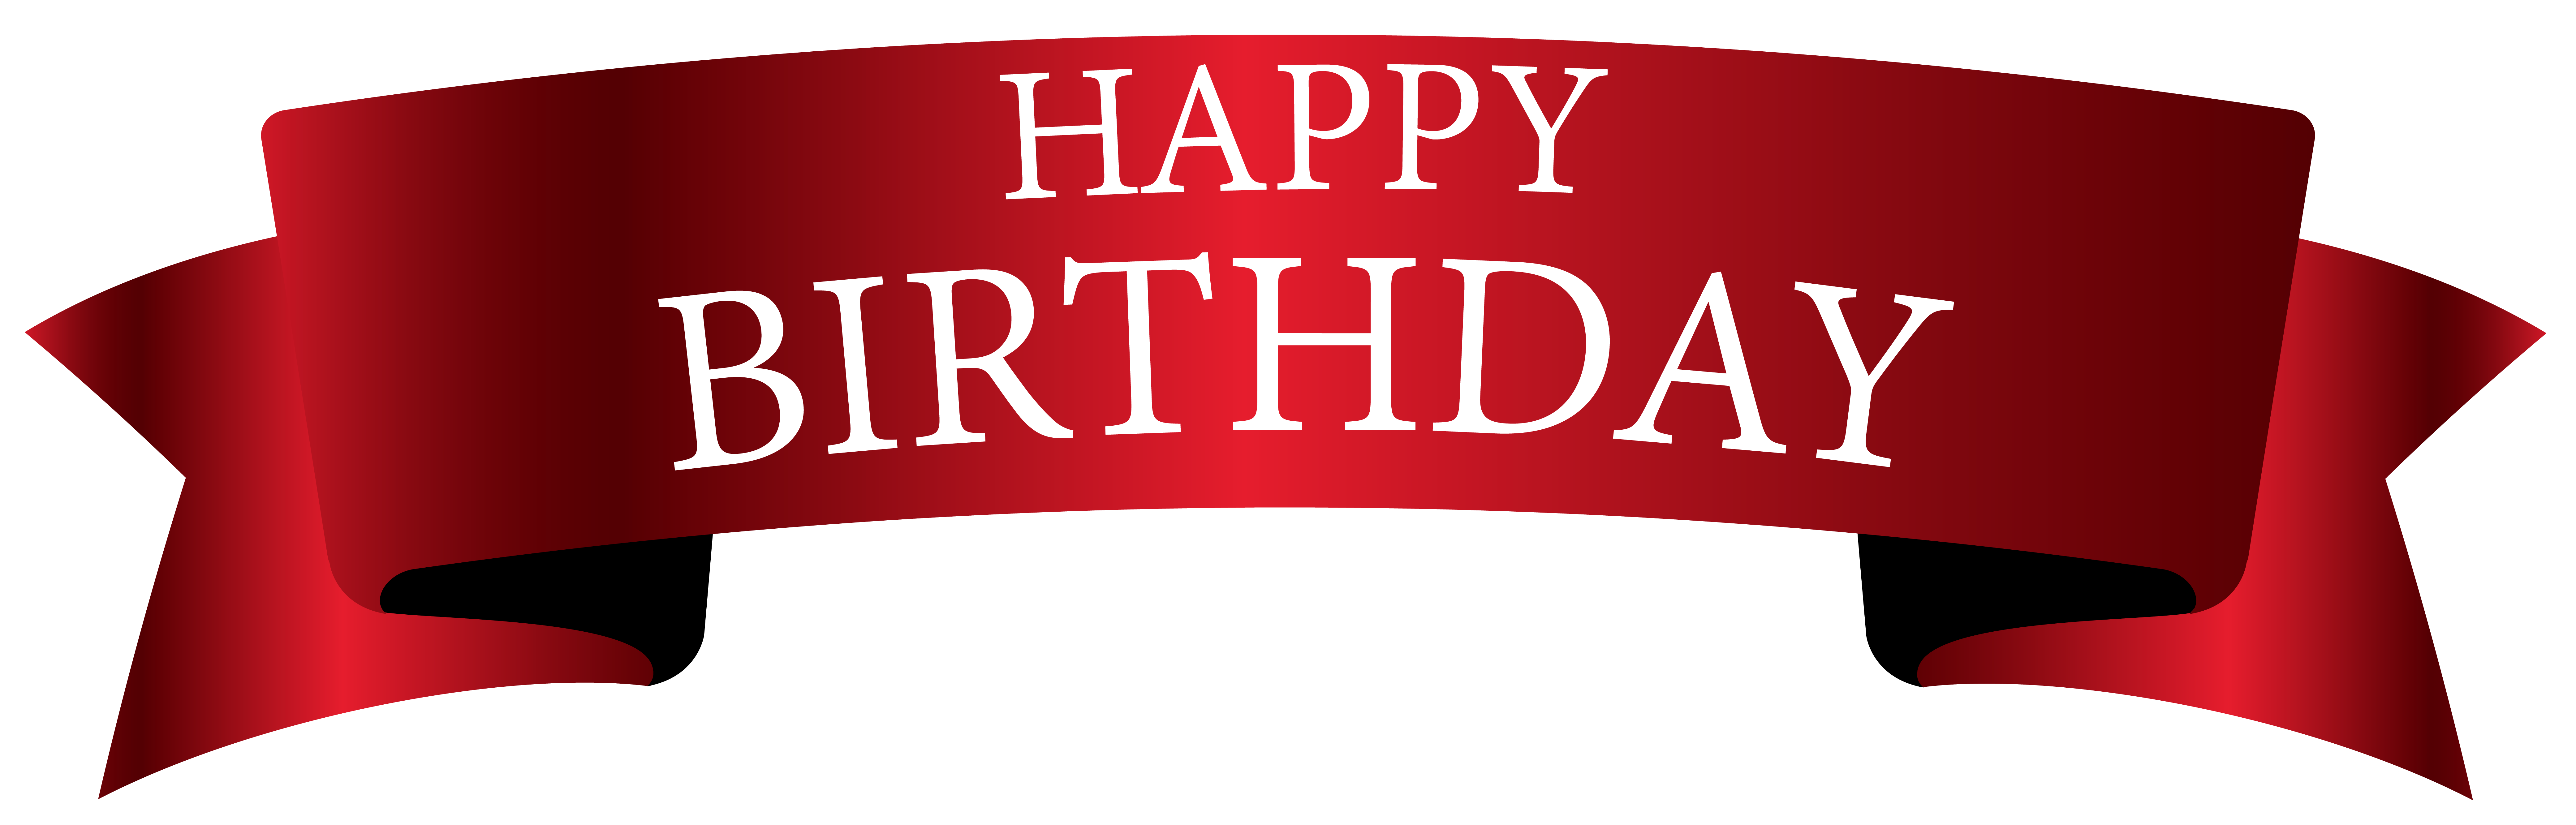 Red Birthday Banner PNG Clipart Image.